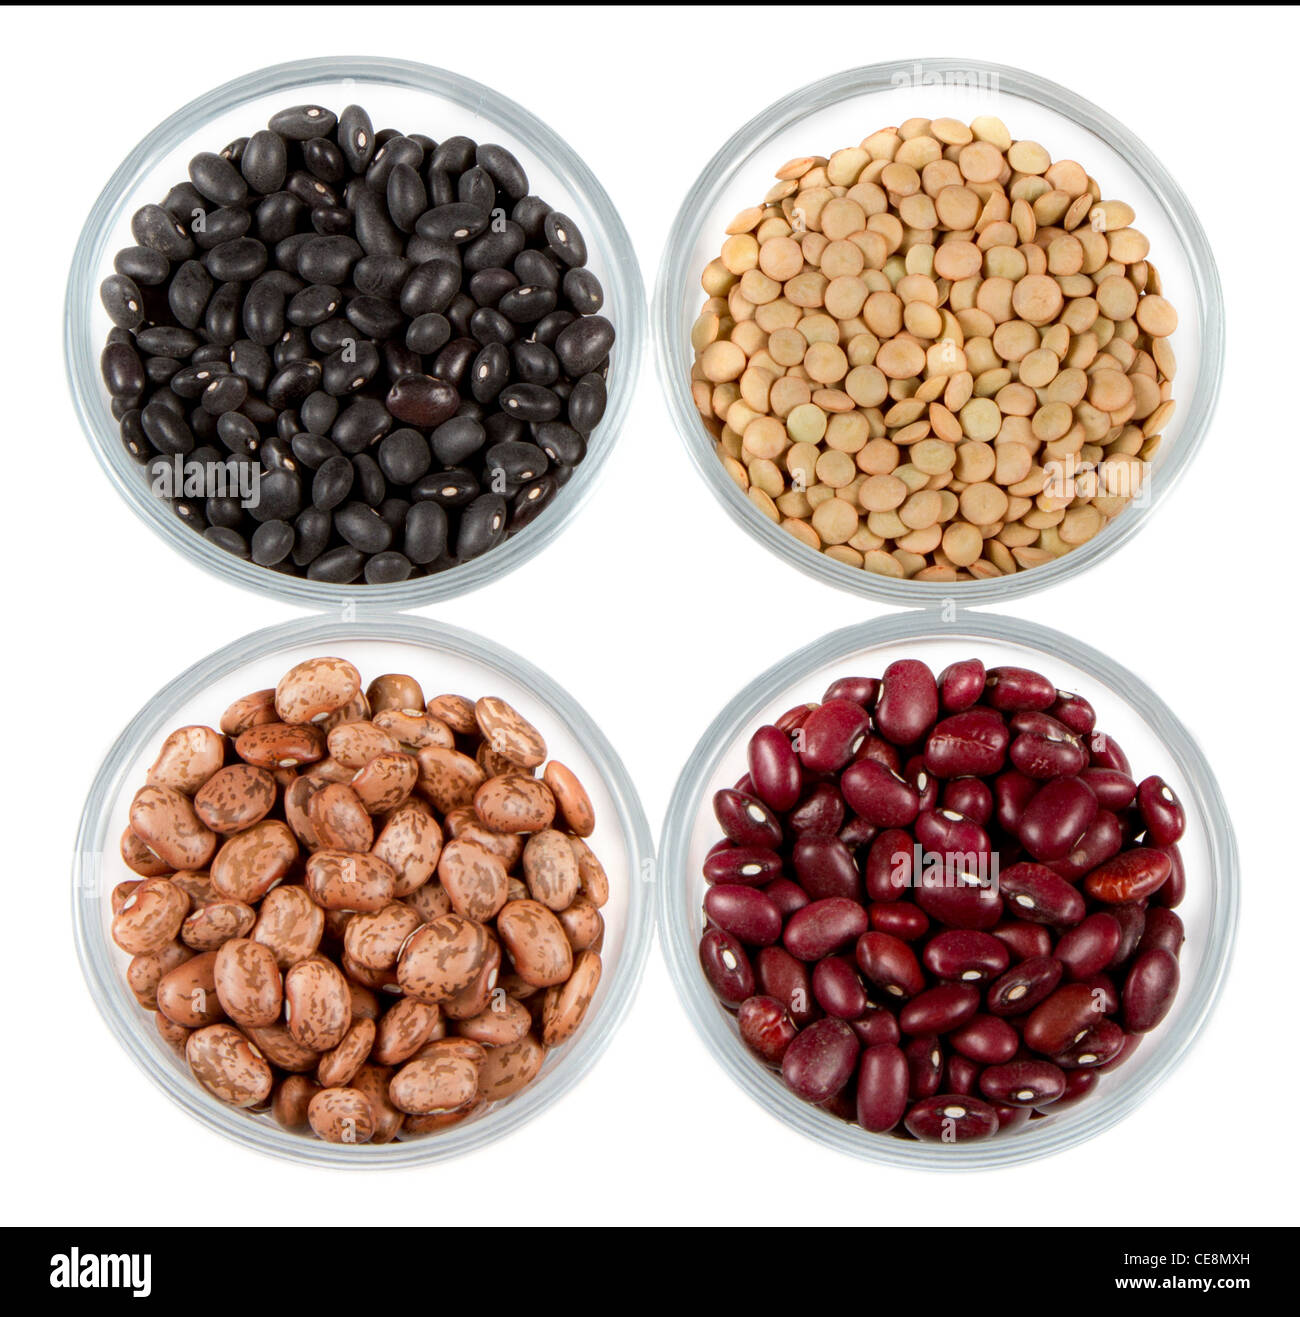 black beans, red beans, pinto beans and lentils photographed in round jars isolated on a white background Stock Photo